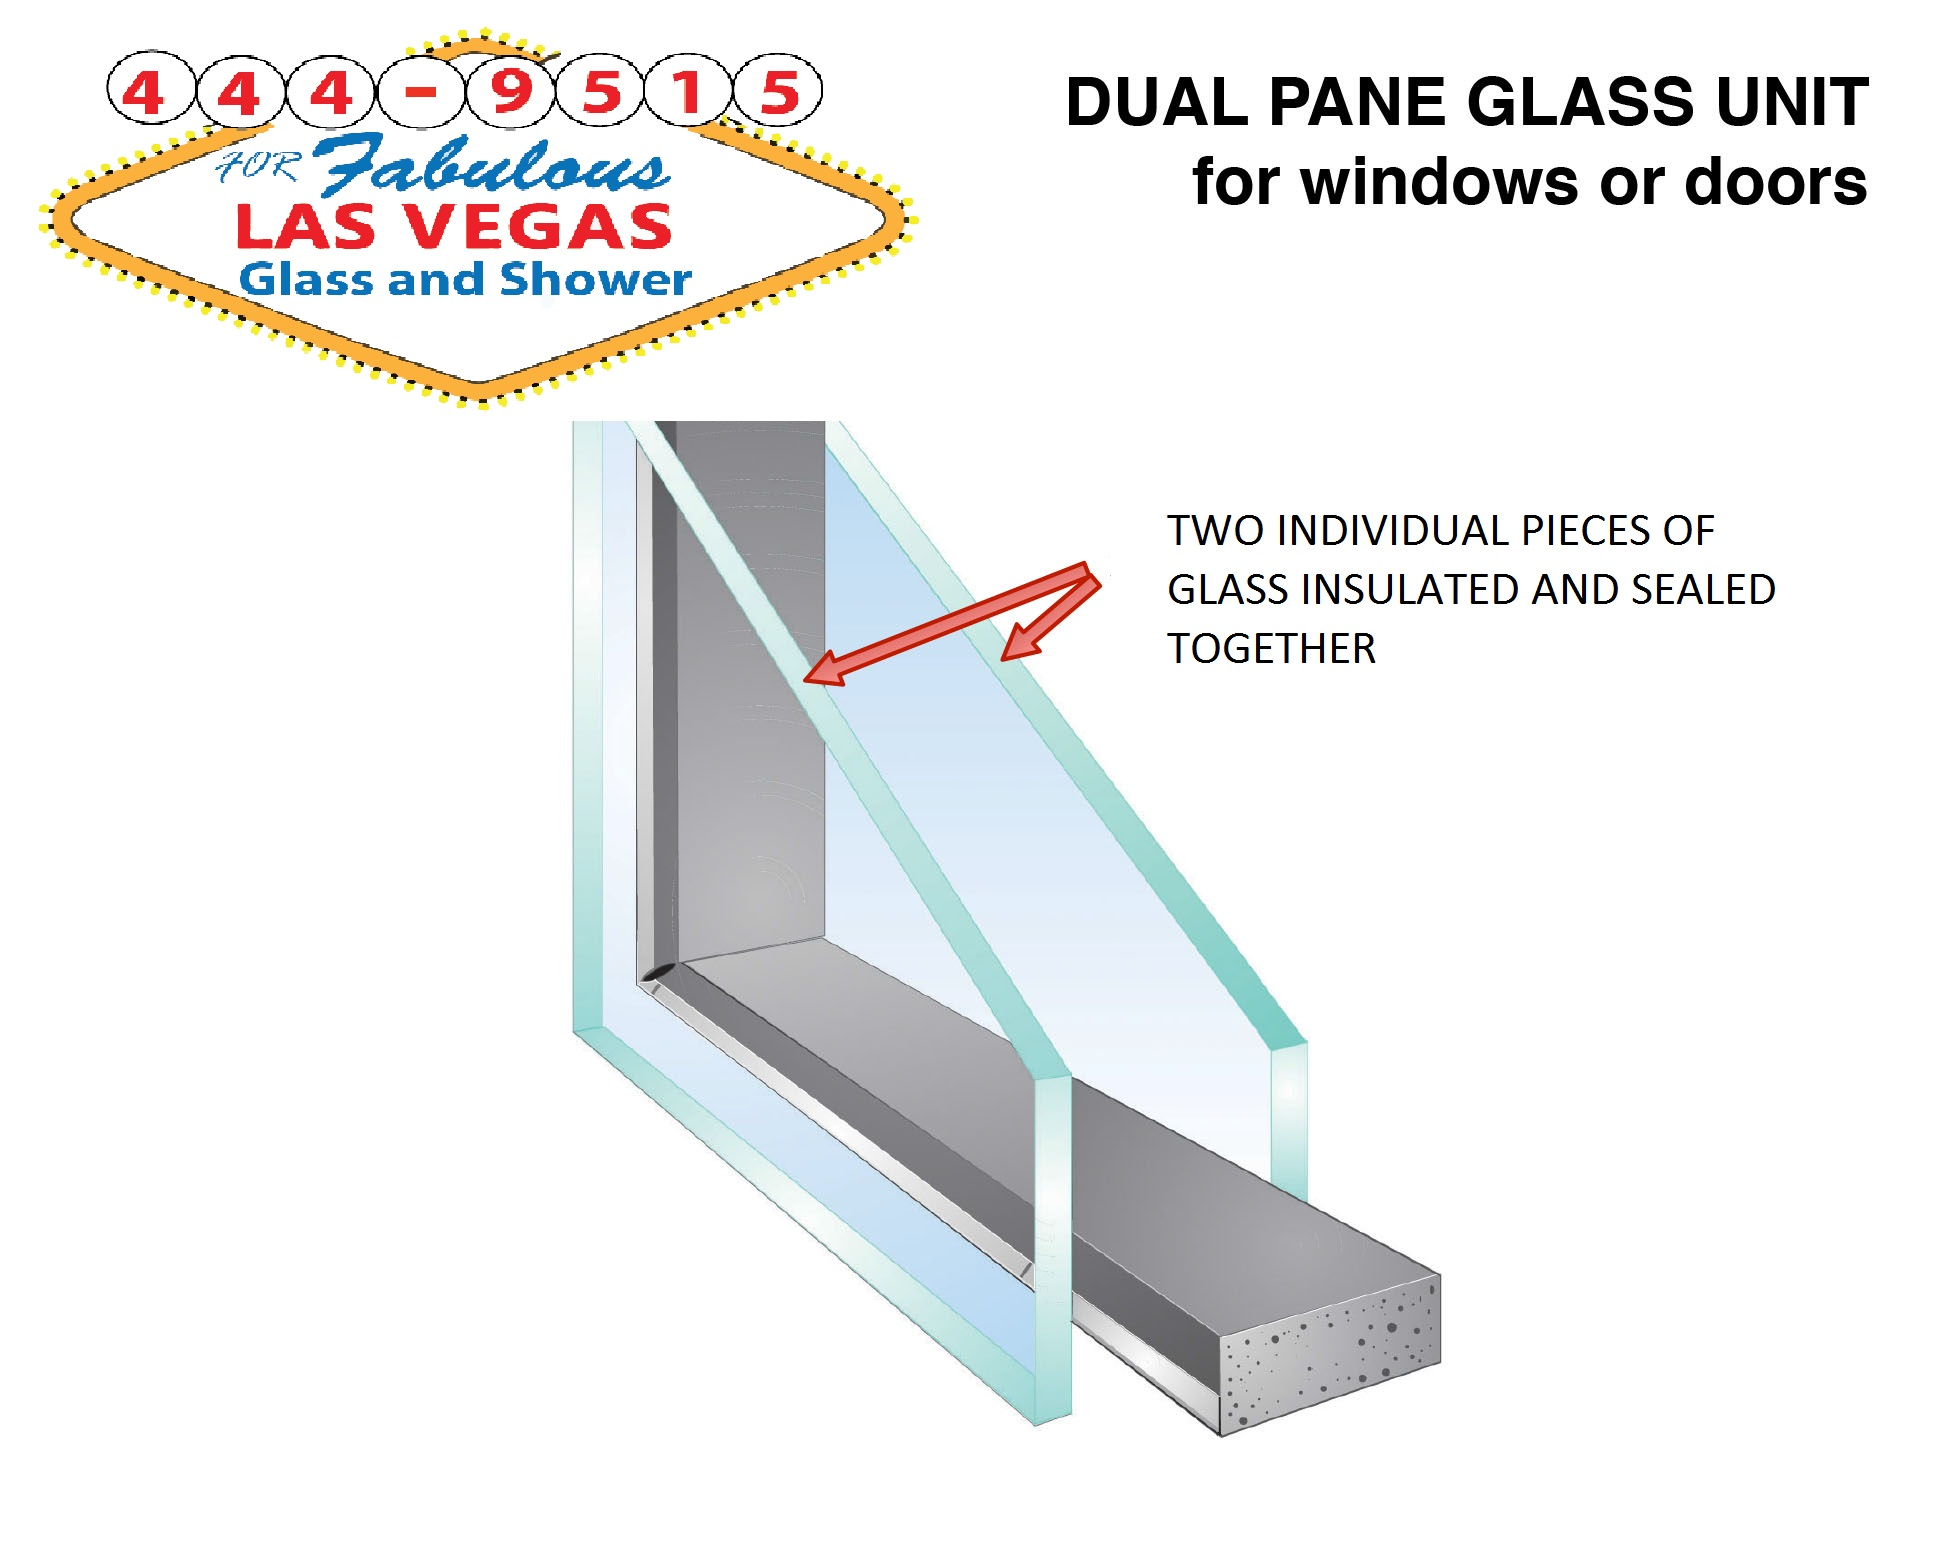 5 questions to price glass repair in las vegas glass for Thickness of glass wall for exterior